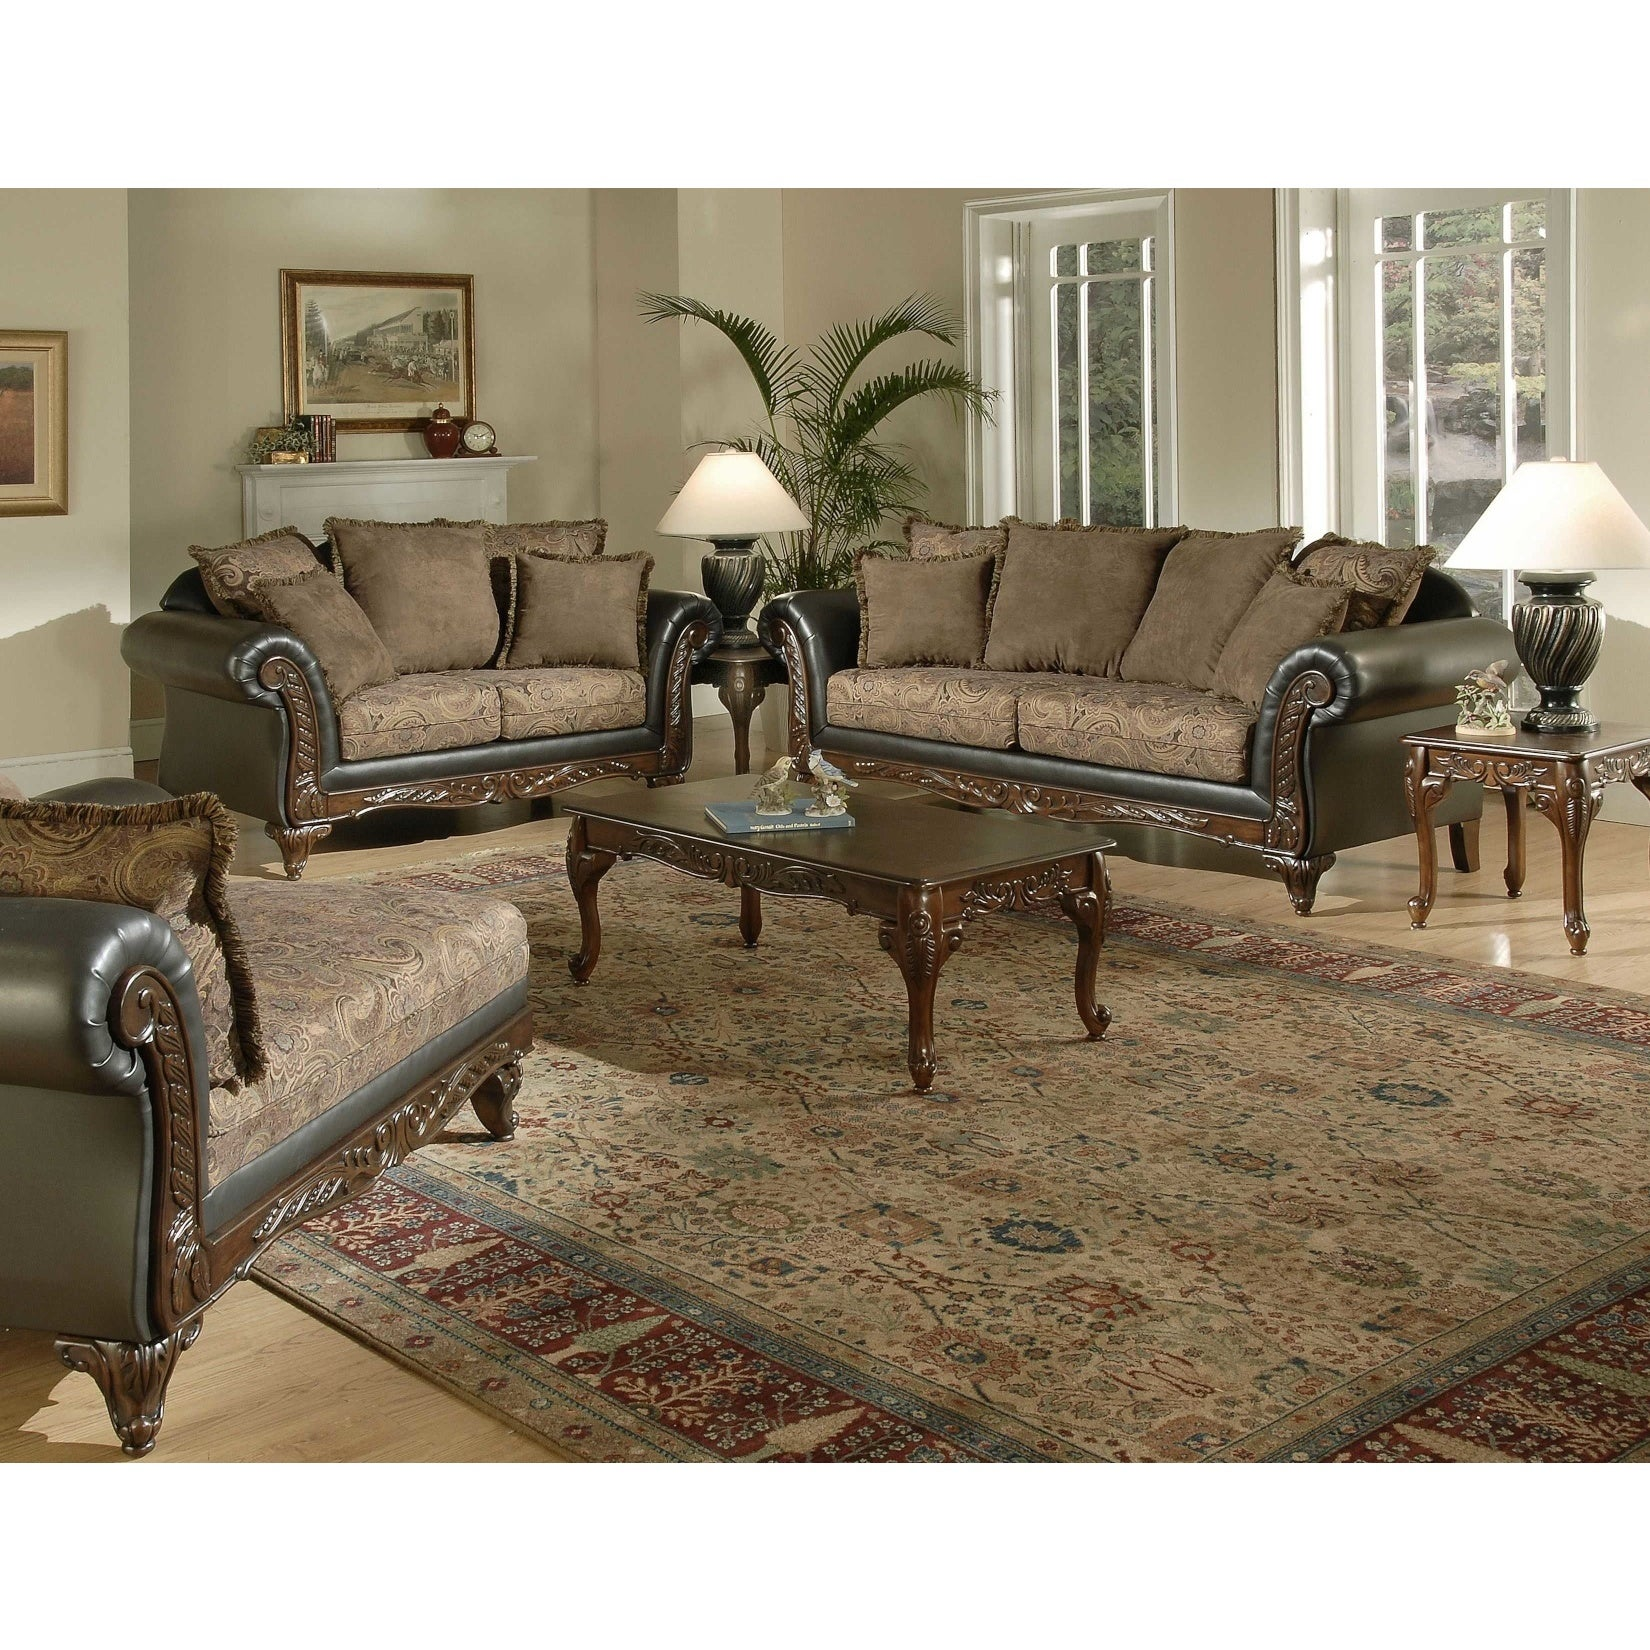 San Marino 2 Tone Chocolate Brown Fabric Sofa Loveseat